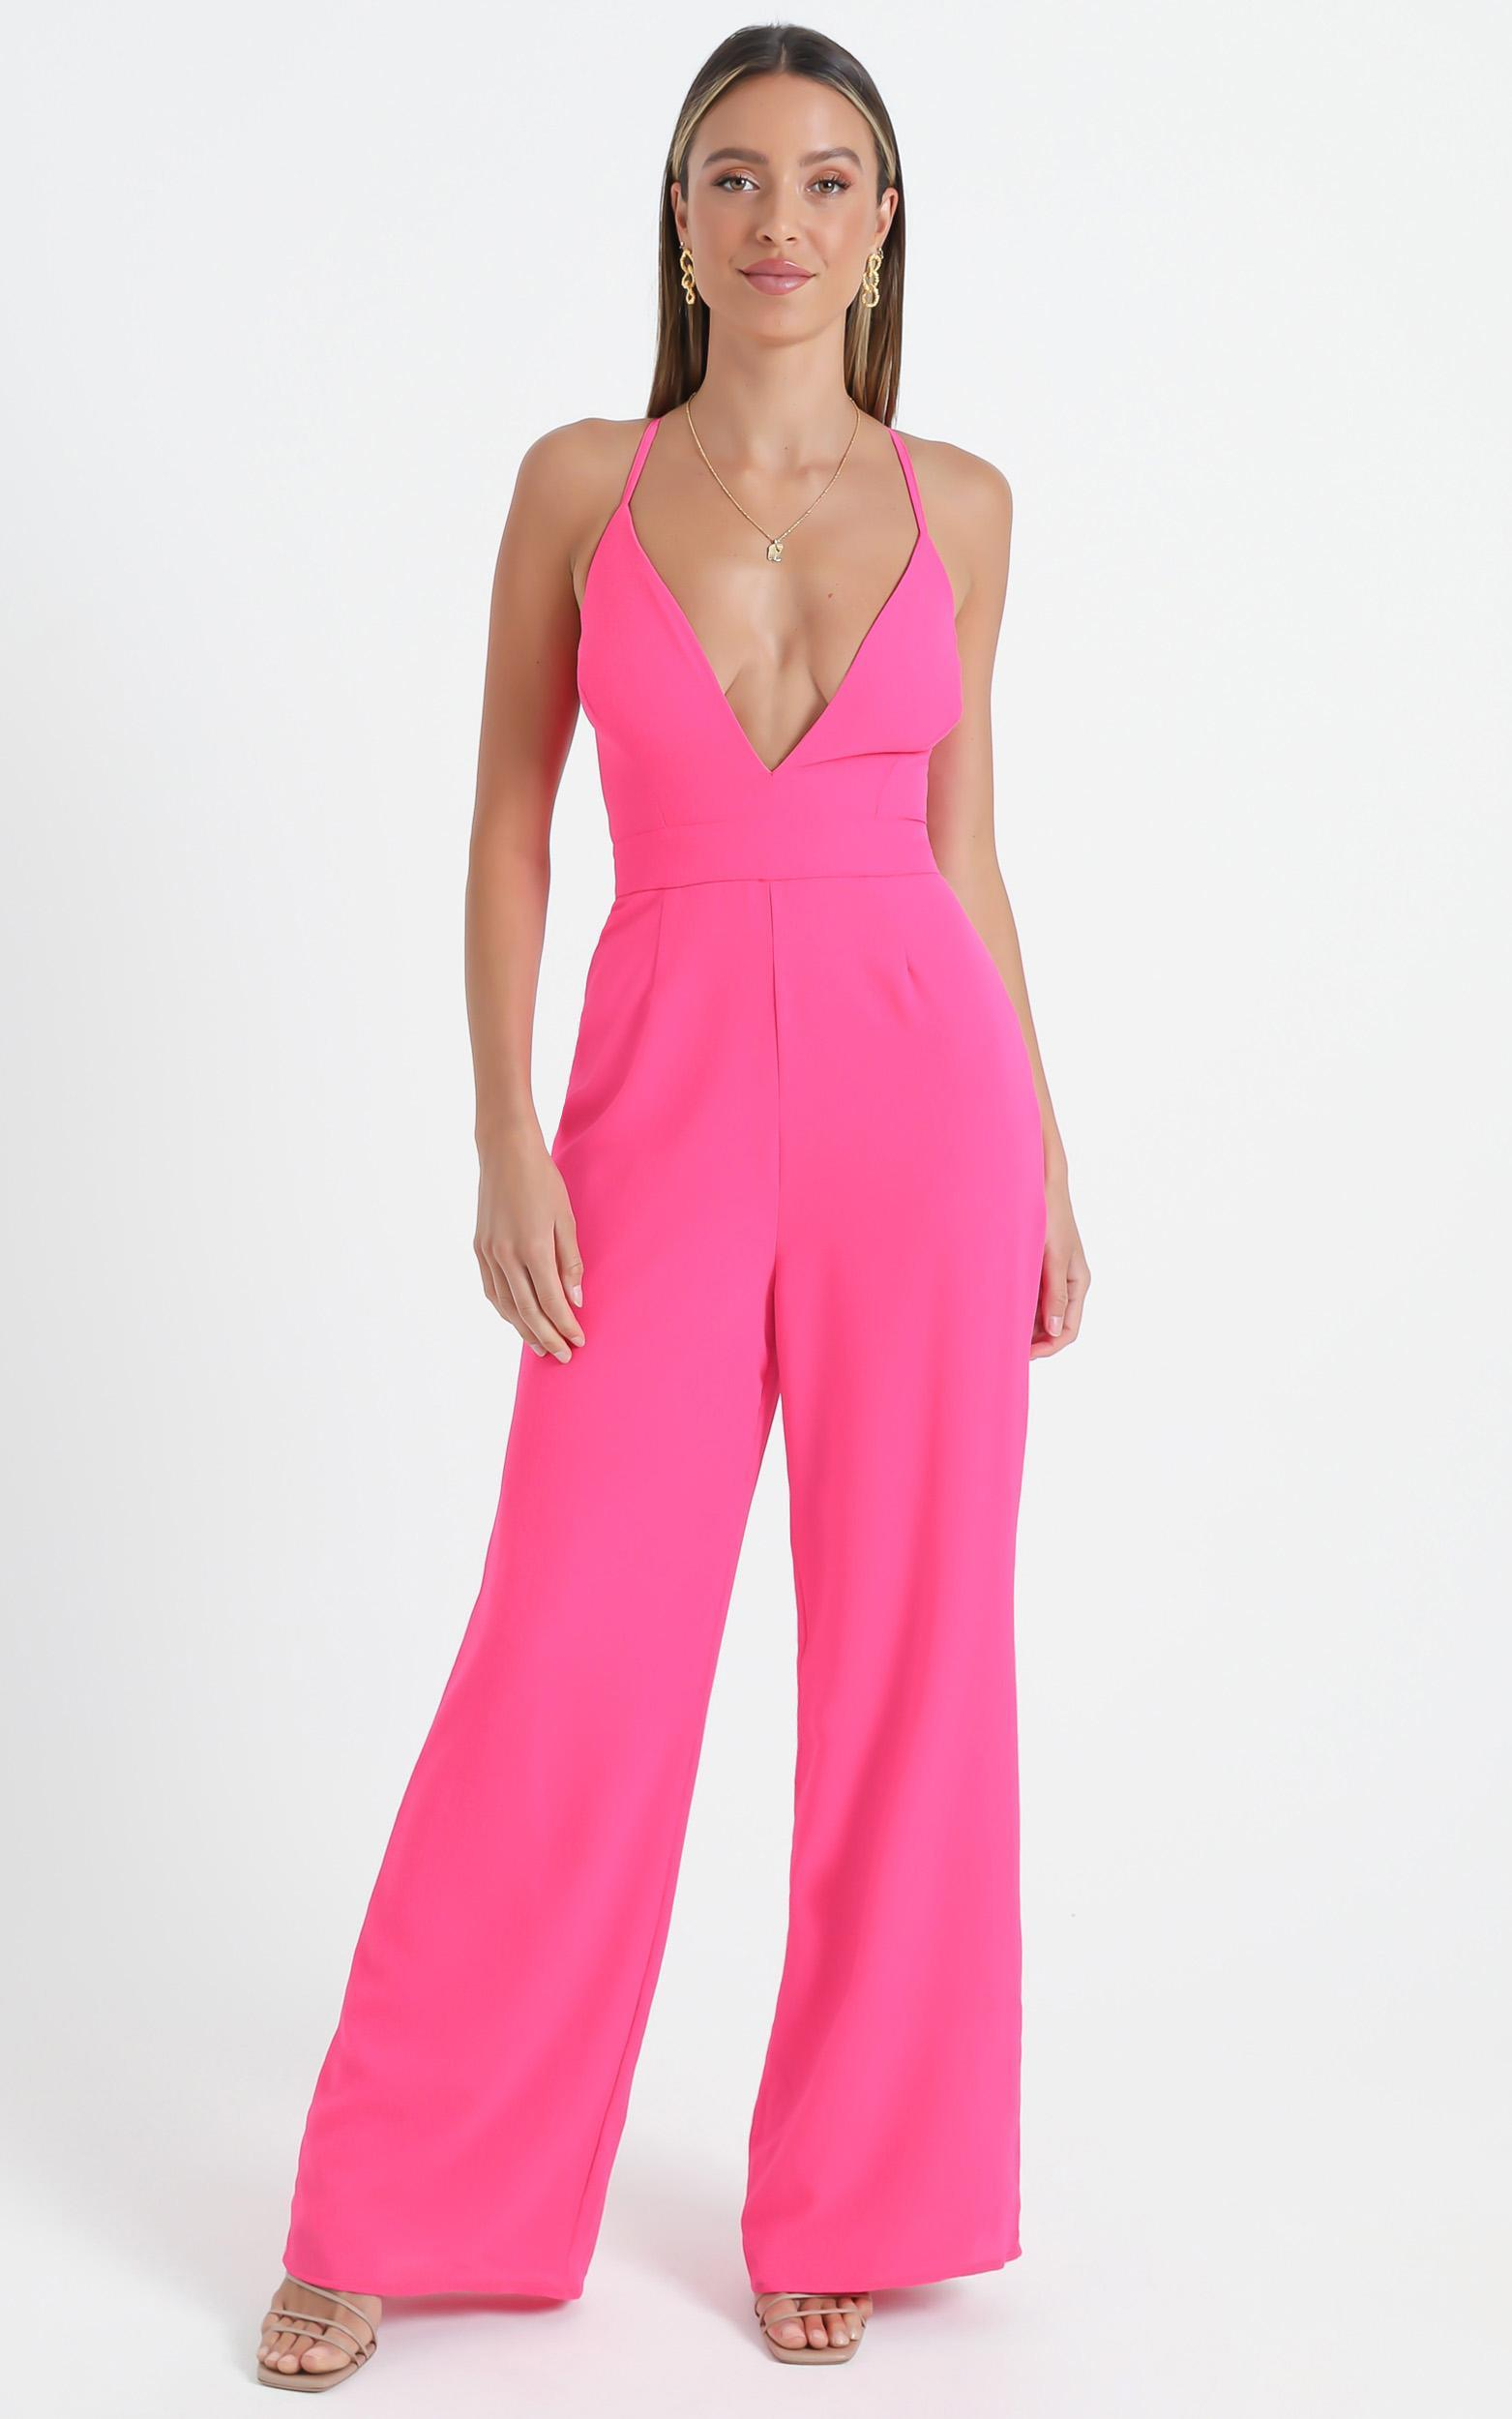 Dream Of Jumpsuit In Hot Pink - 6 (XS), PNK11, hi-res image number null